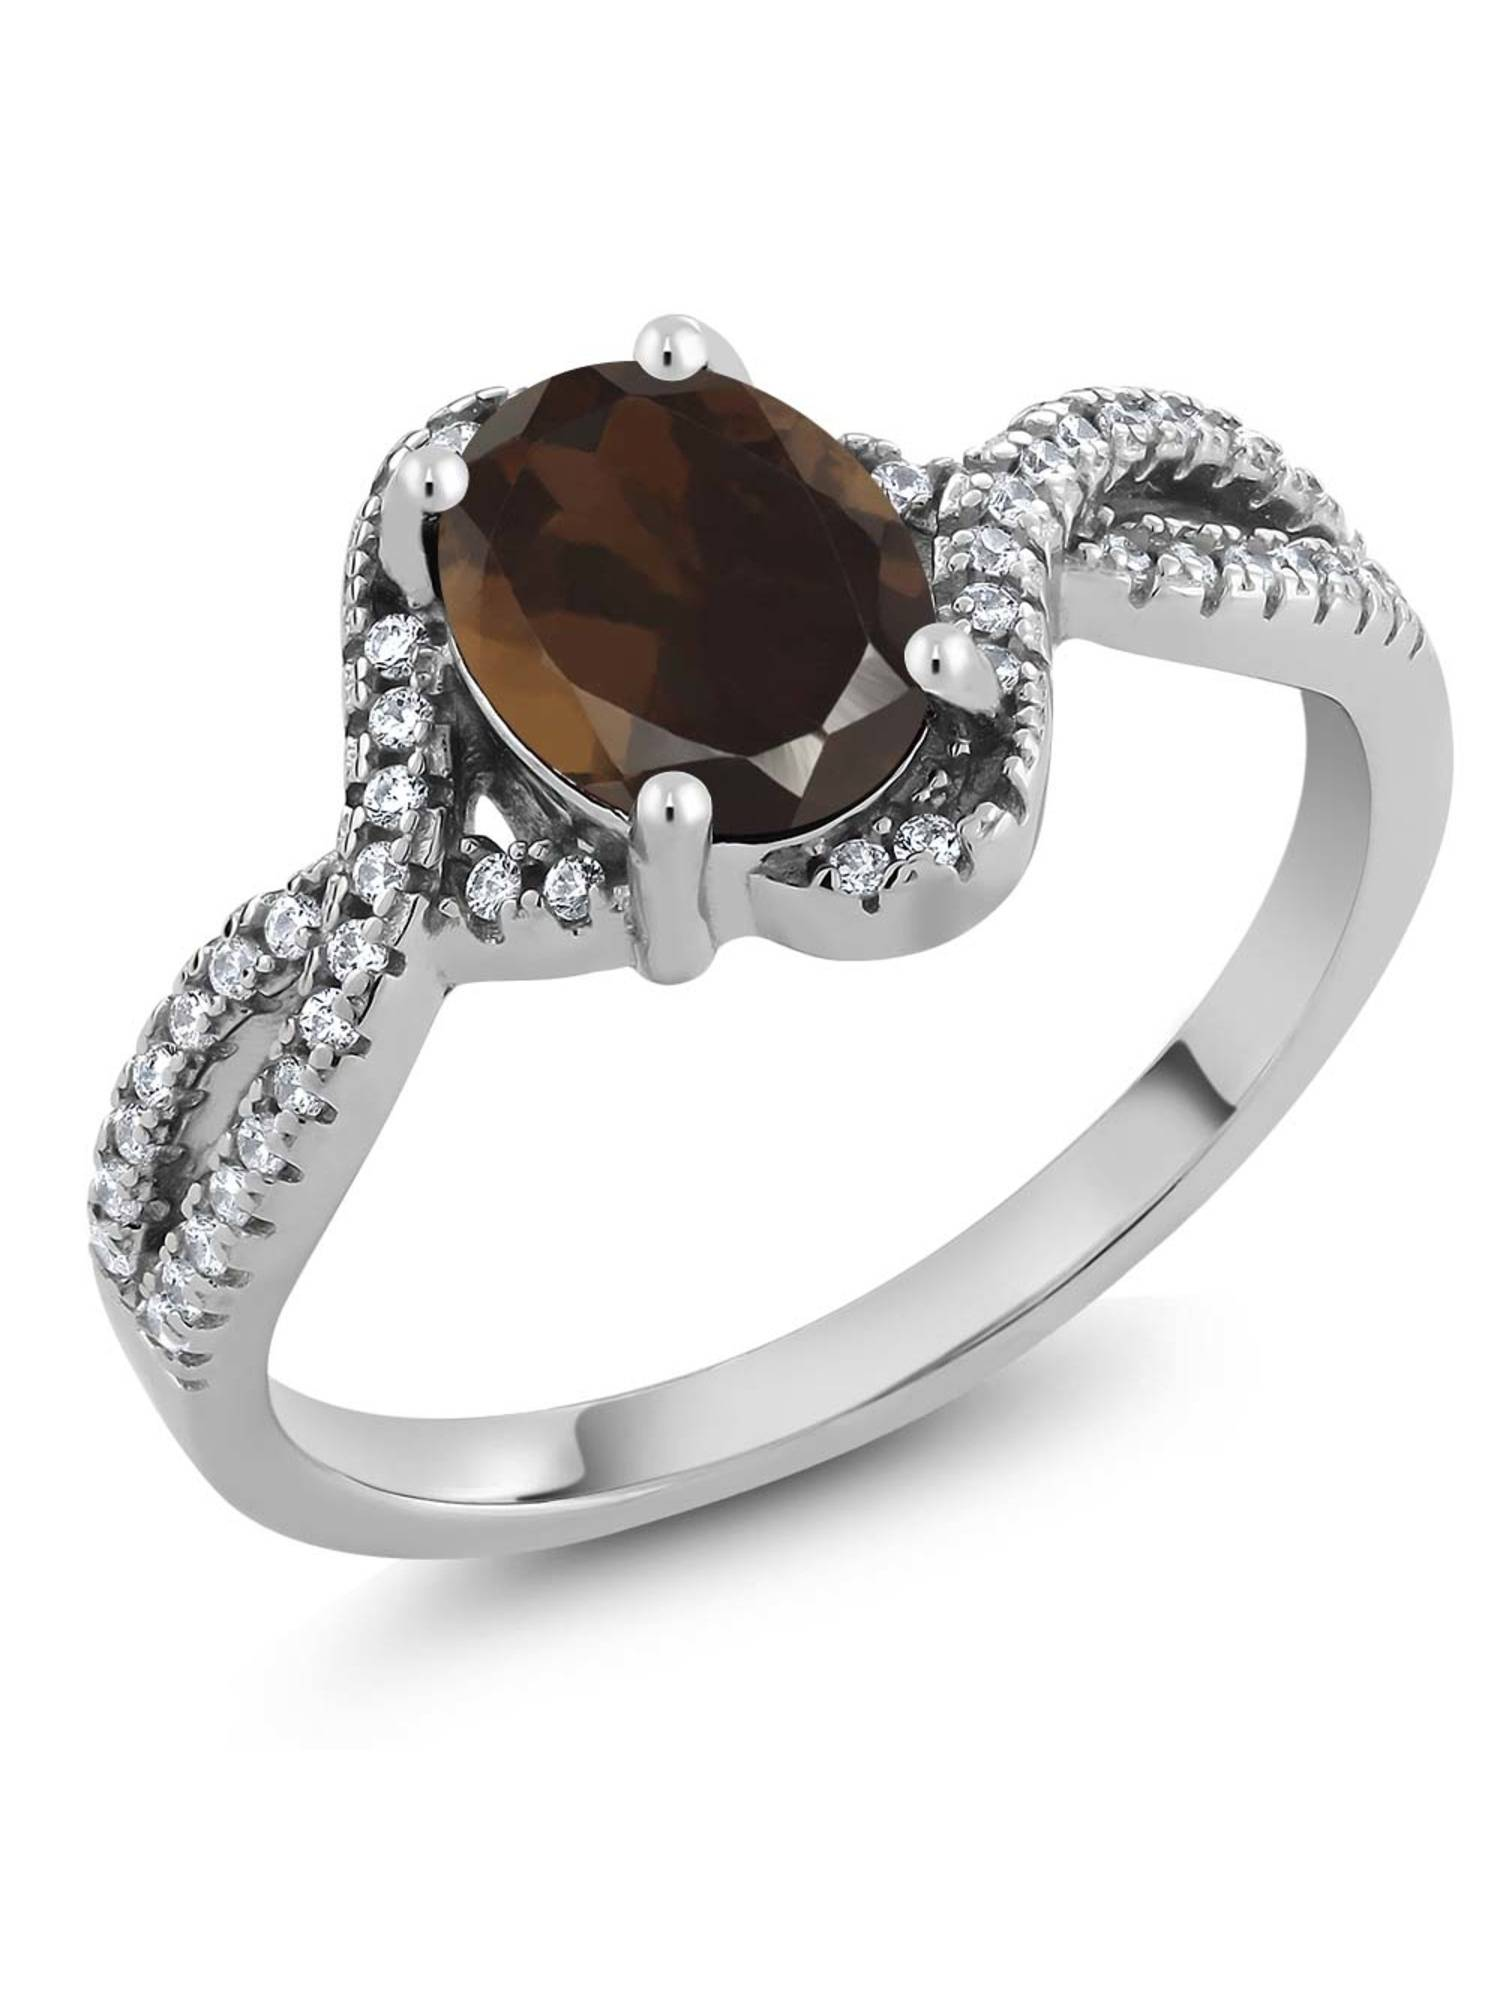 1.78 Ct Oval Brown Smoky Quartz 925 Sterling Silver Ring